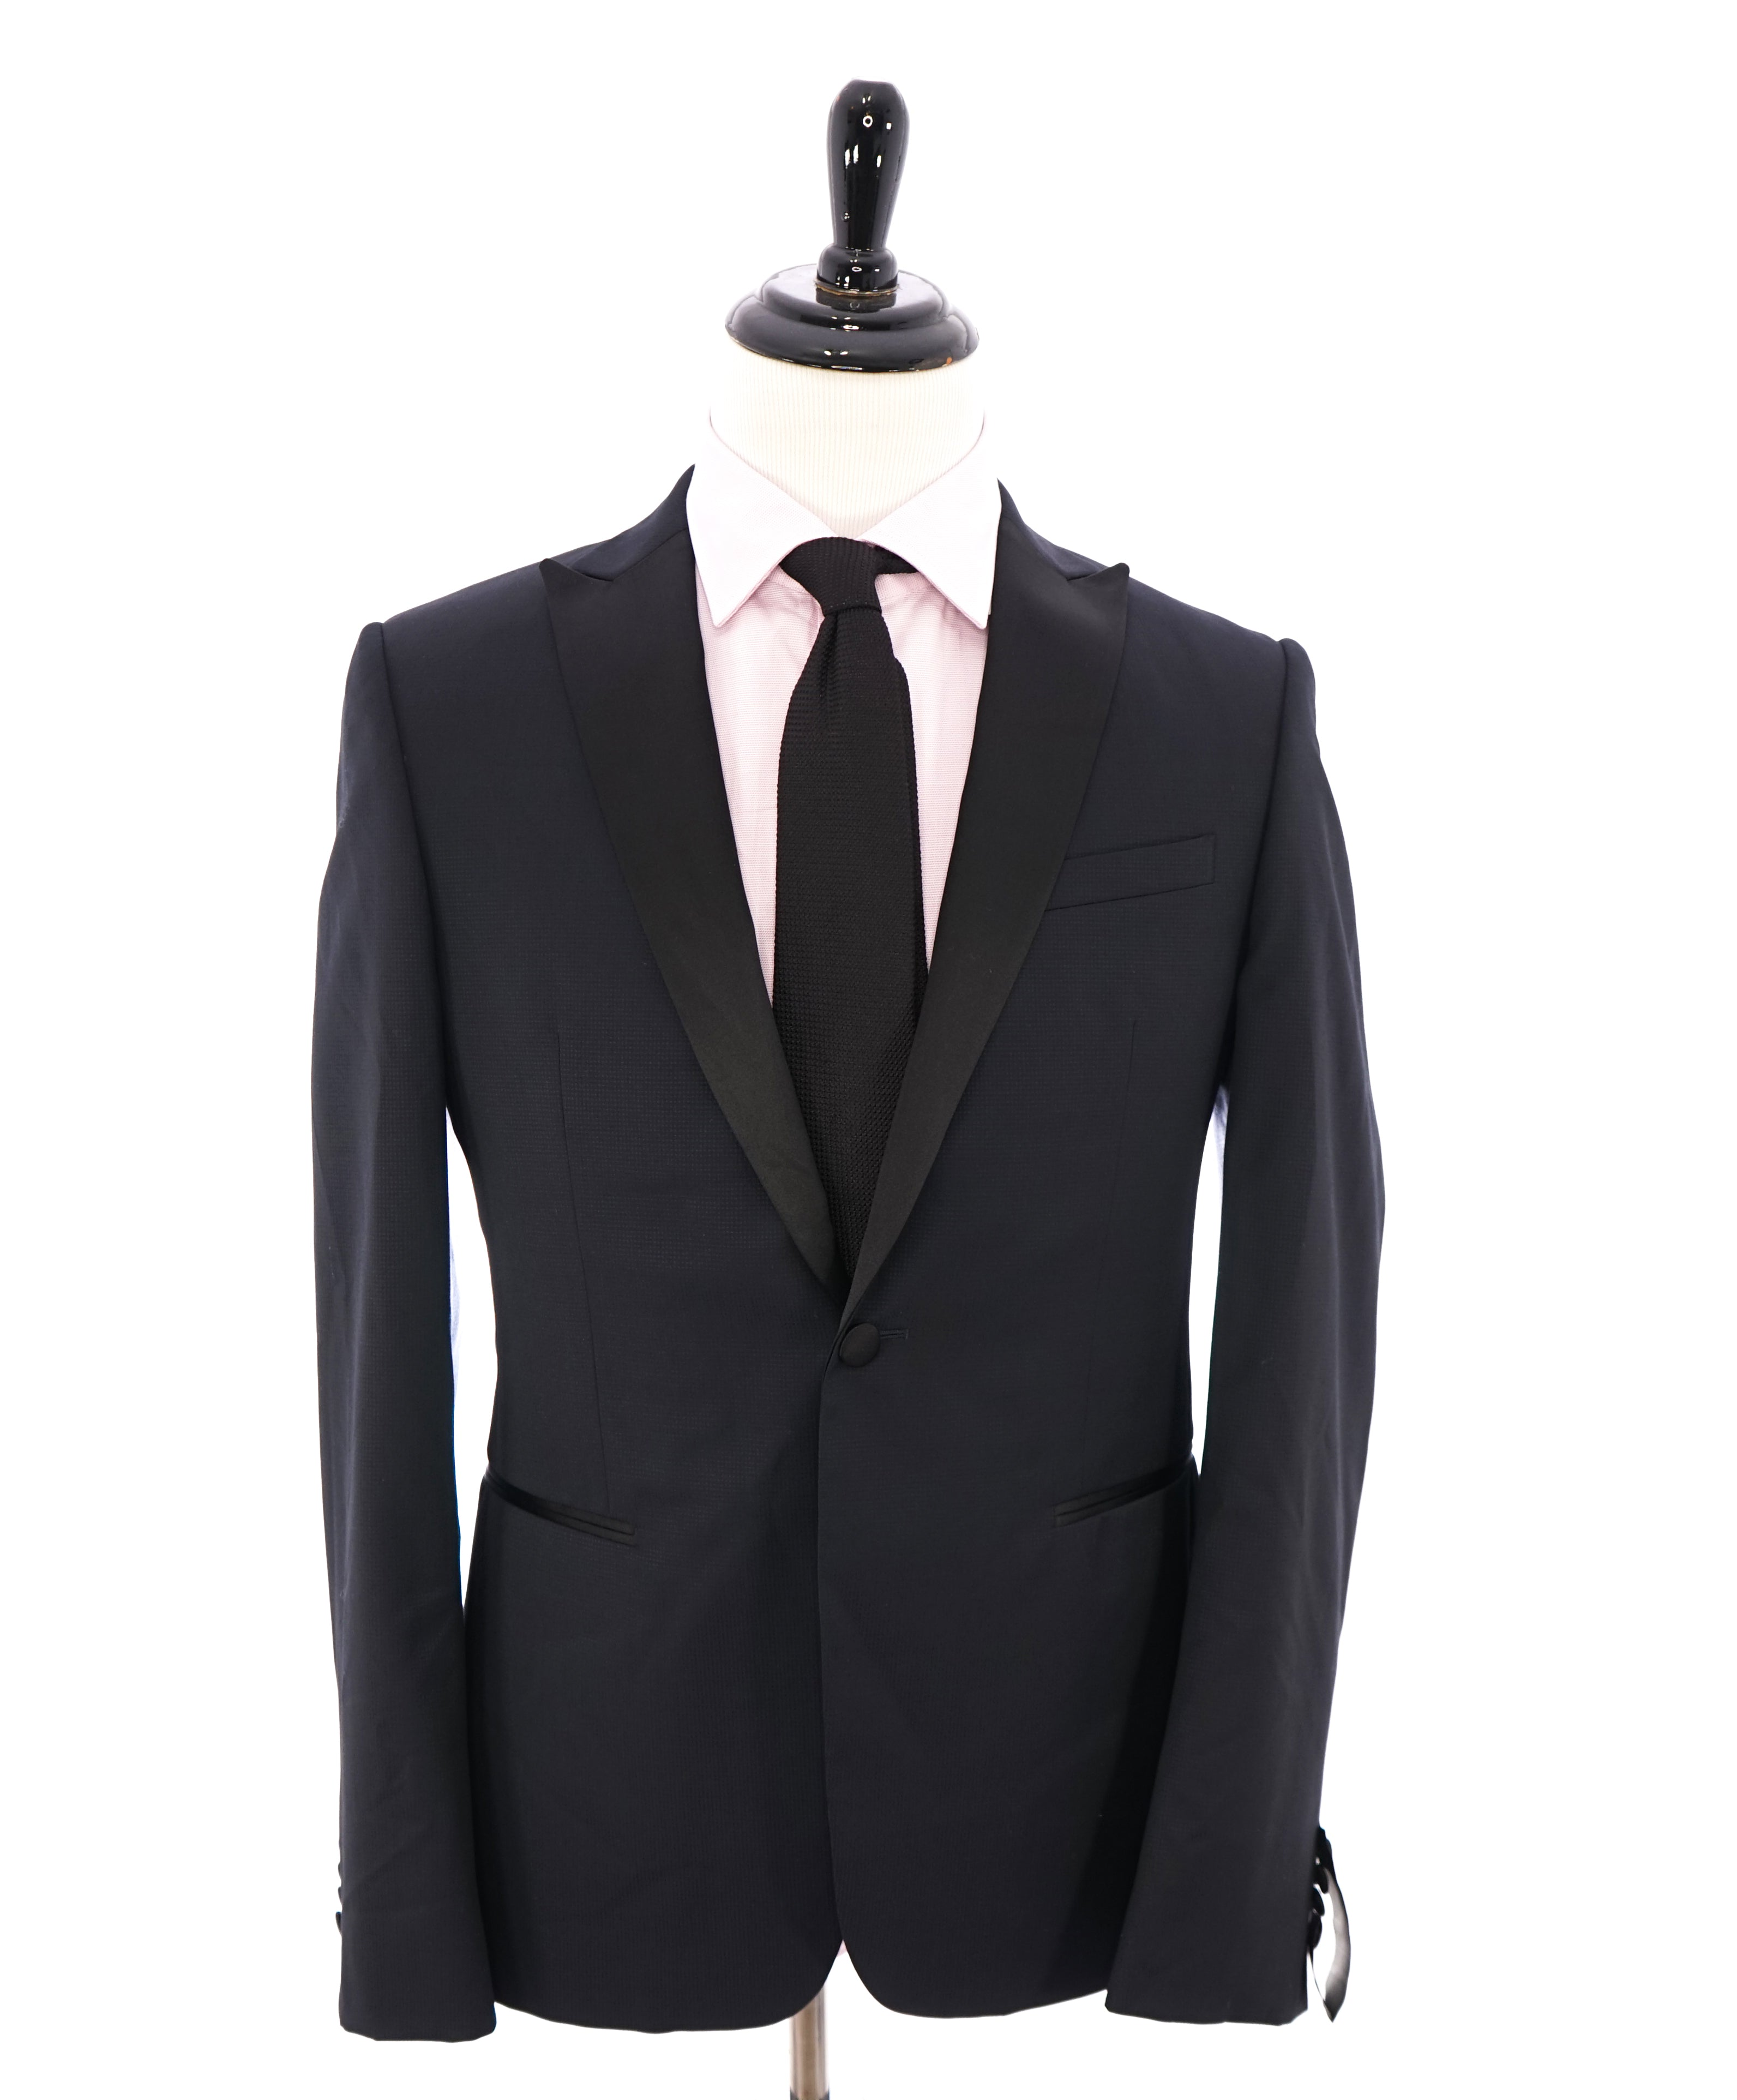 Z ZEGNA - Navy Blue Micro Check Textured Fabric Drop 8 Tuxedo Suit - 40R